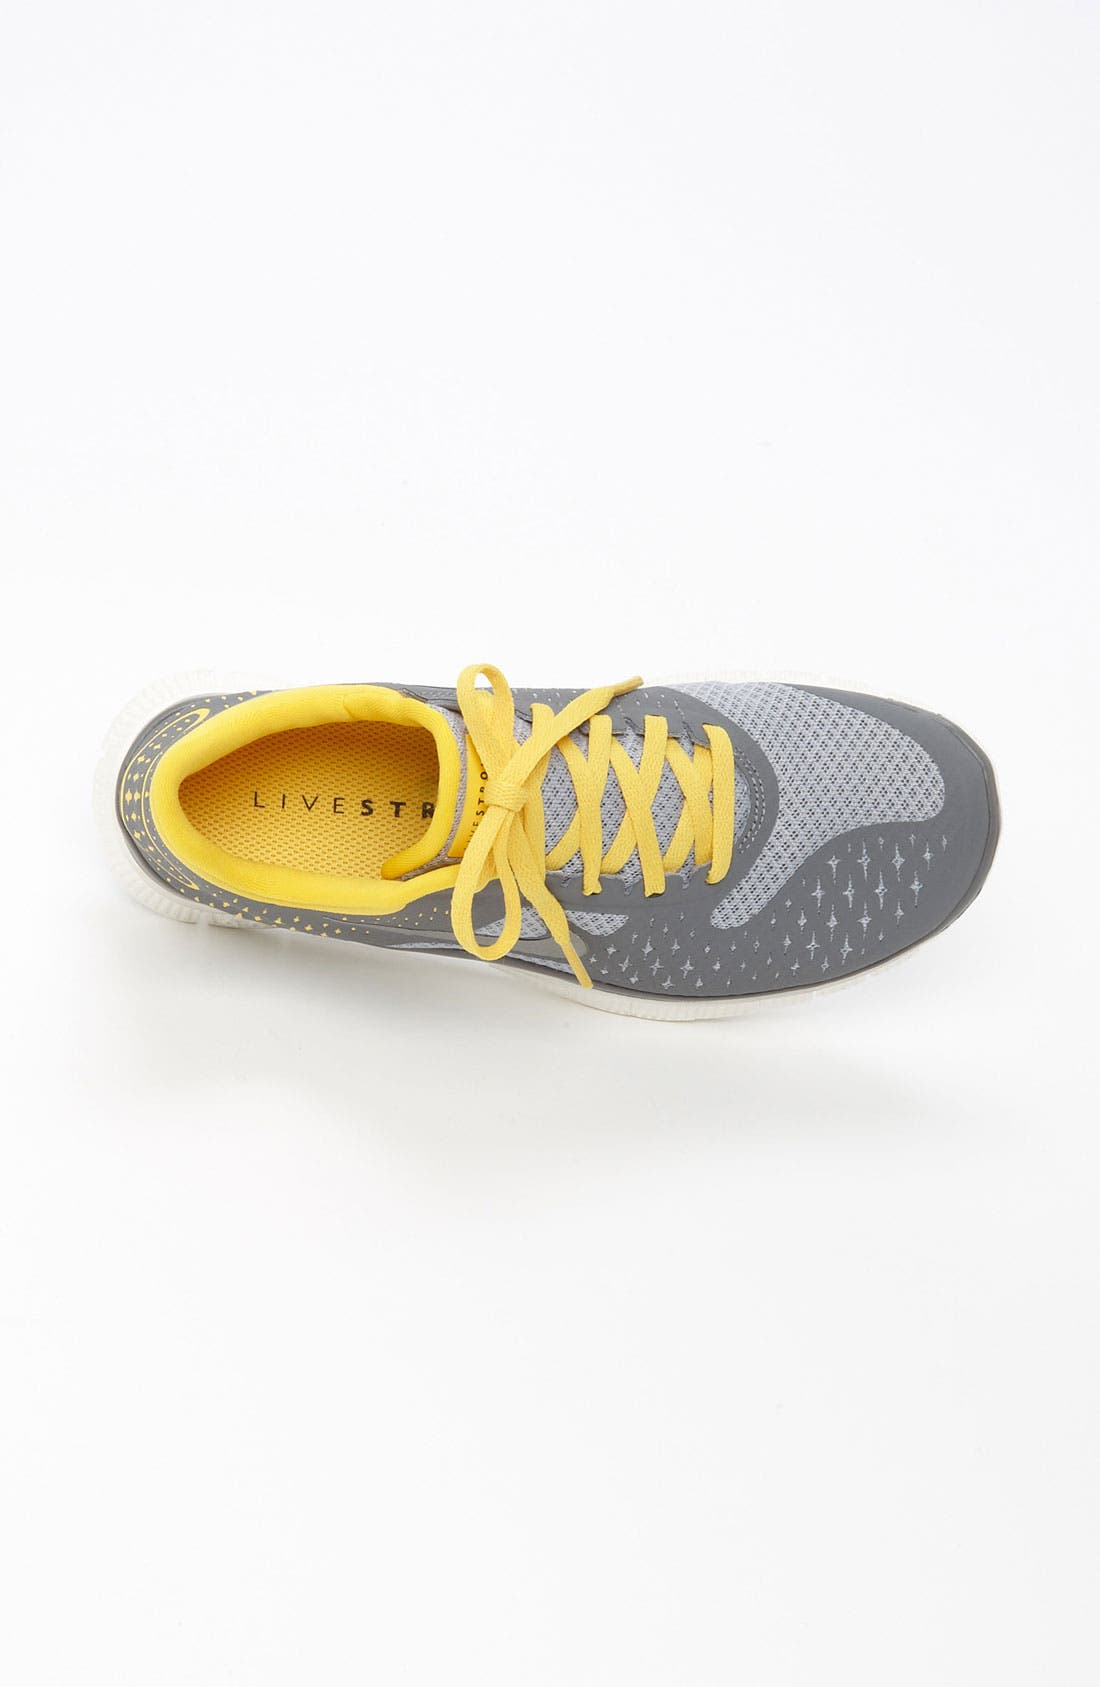 Alternate Image 3  - Nike 'Free 4.0 V2 Livestrong' Running Shoe (Women)